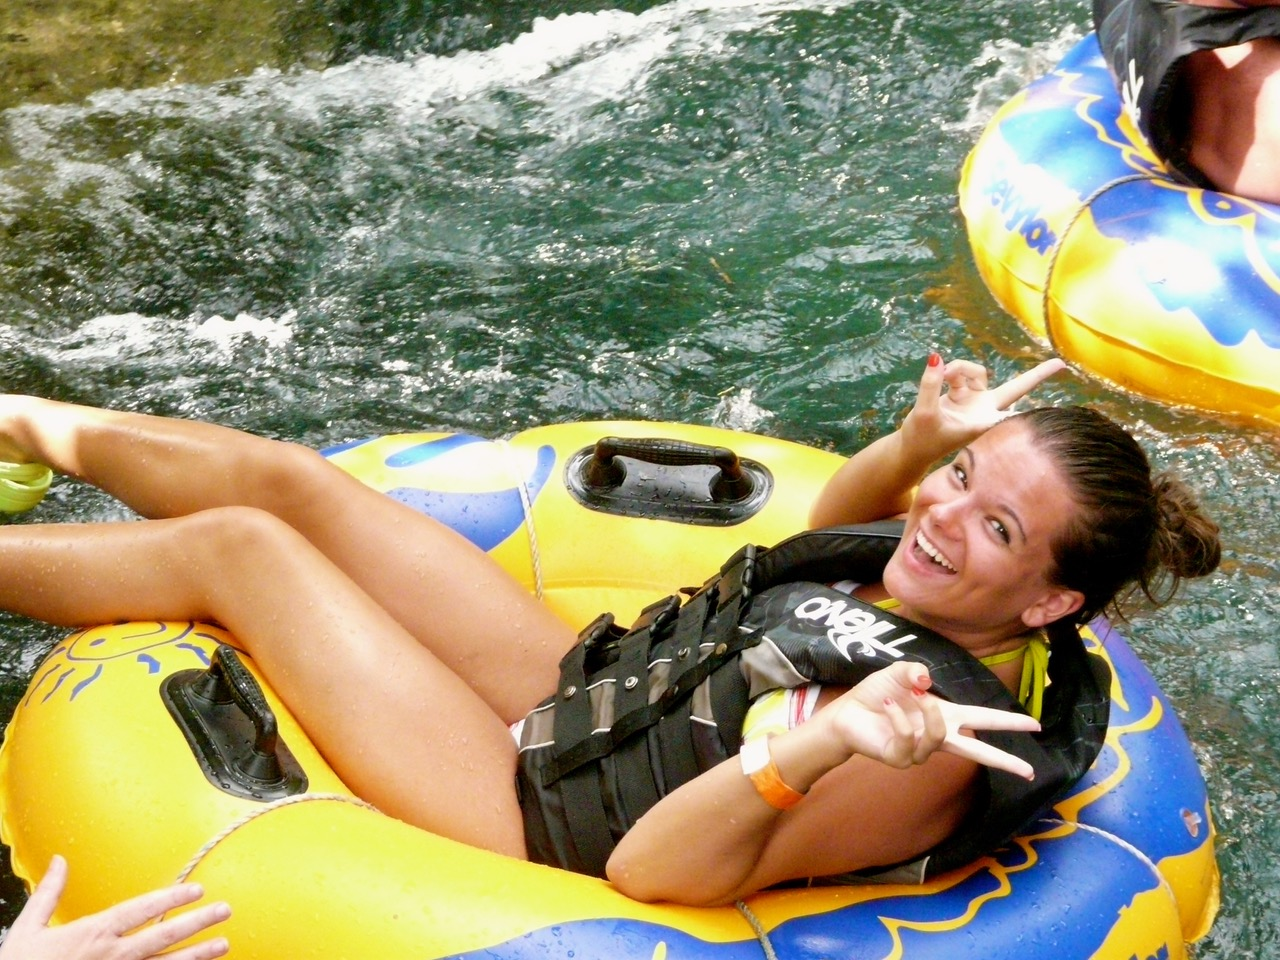 After a great Caribbean cruise - or during! - river tubing in Jamaica